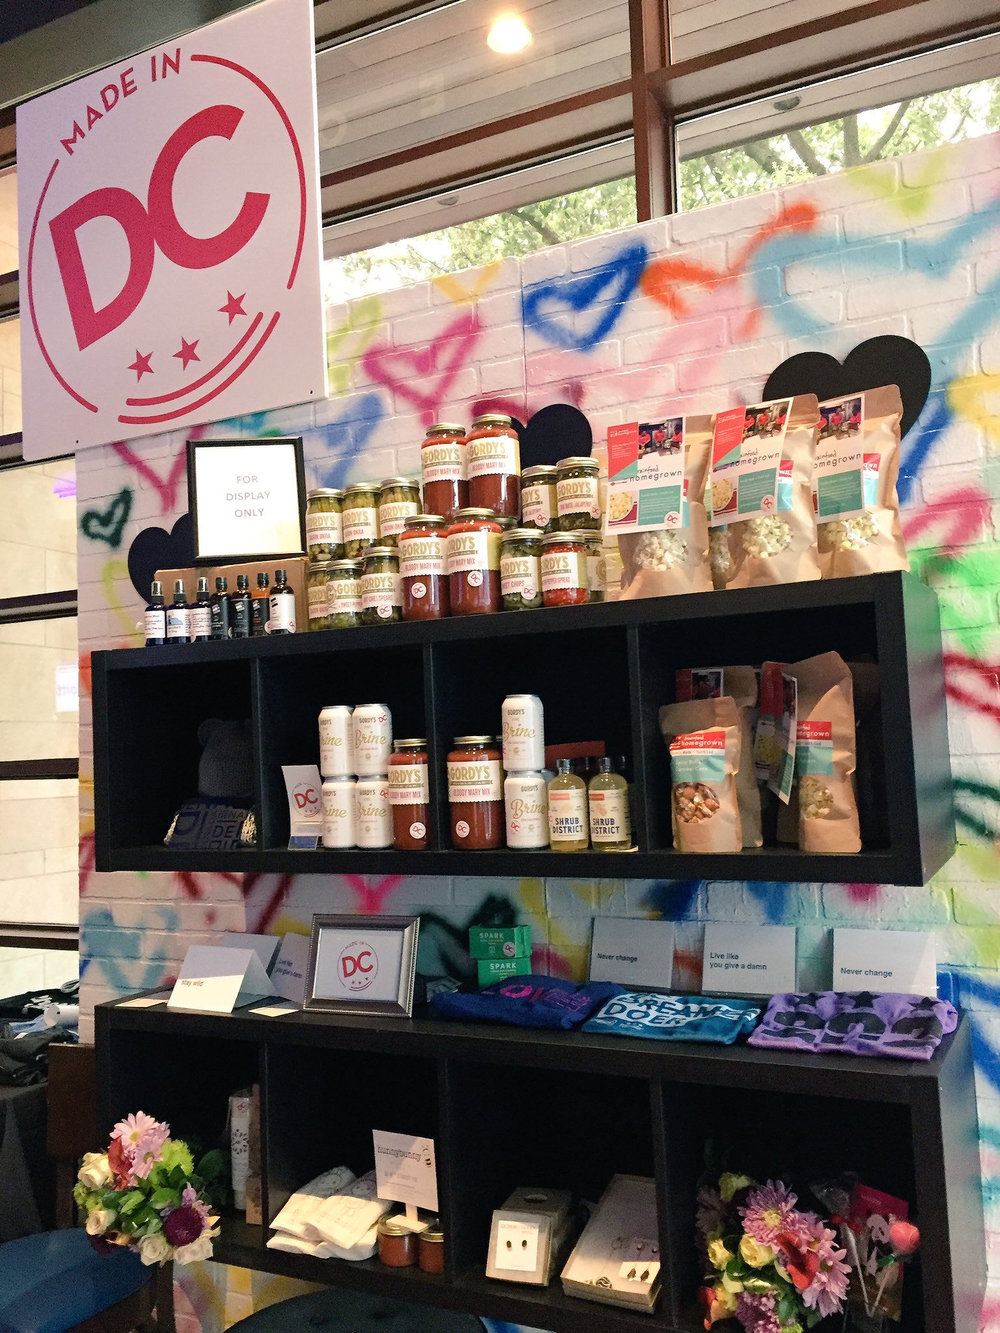 Made in DC product wall